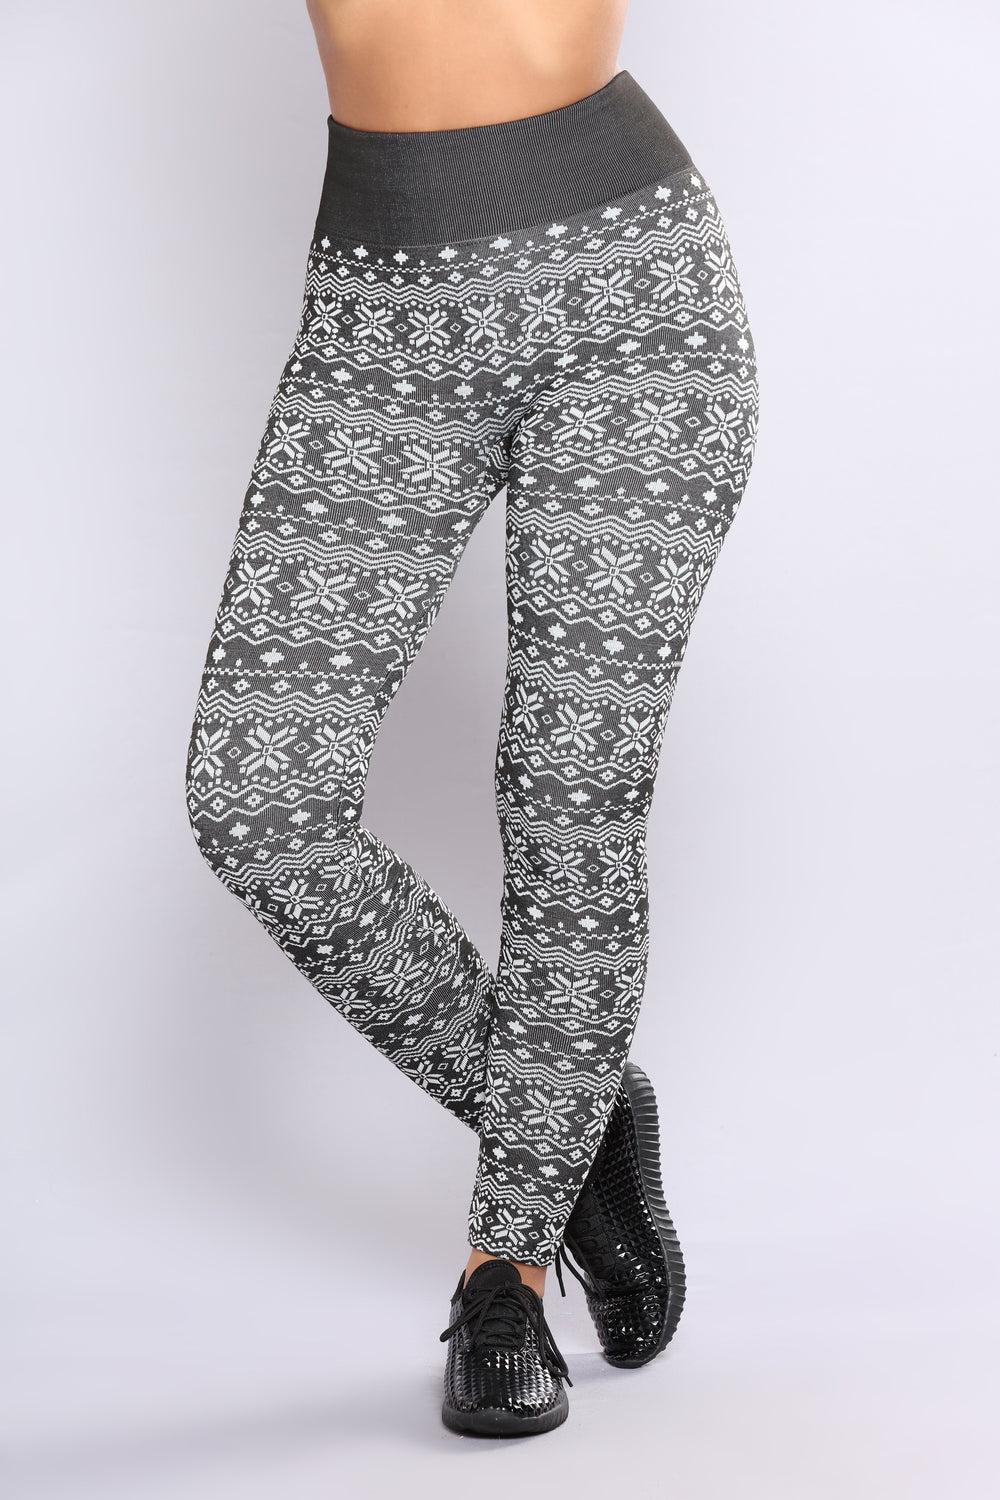 Danna Fleece Lined Leggings - Black/White